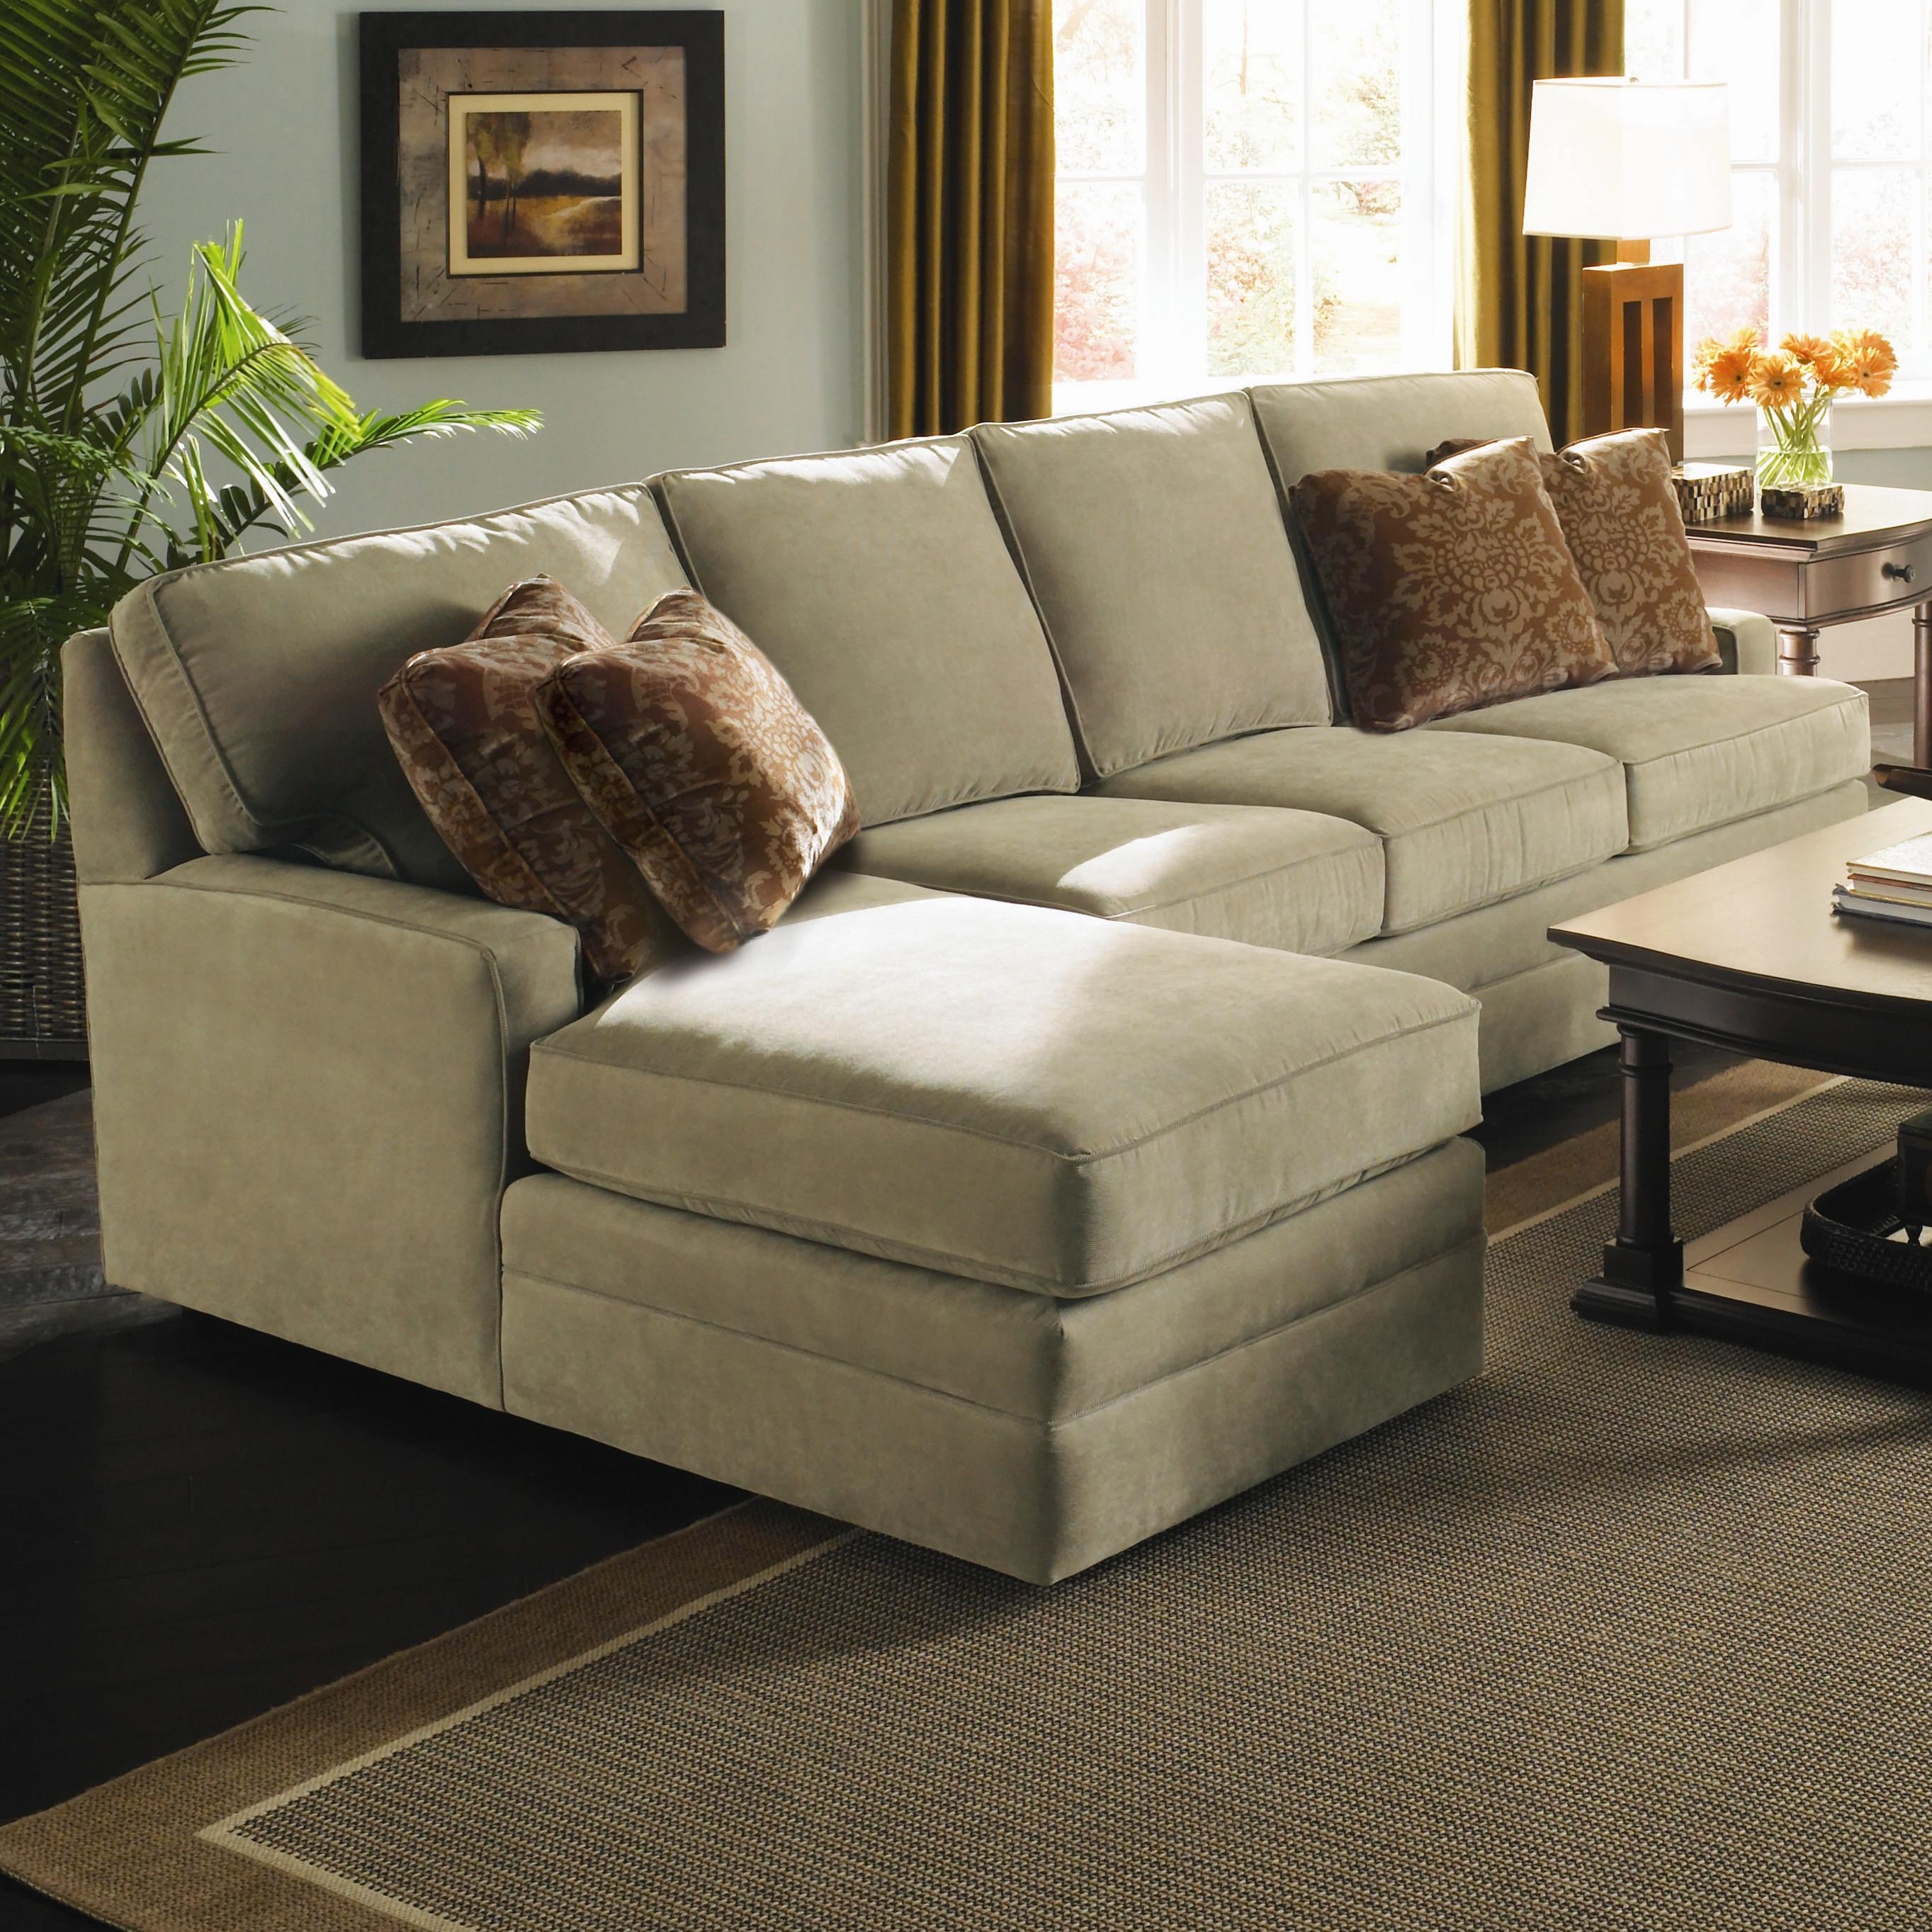 Custom Select Upholstery Custom 2 Piece Sectional With Chaise By Kincaid  Furniture